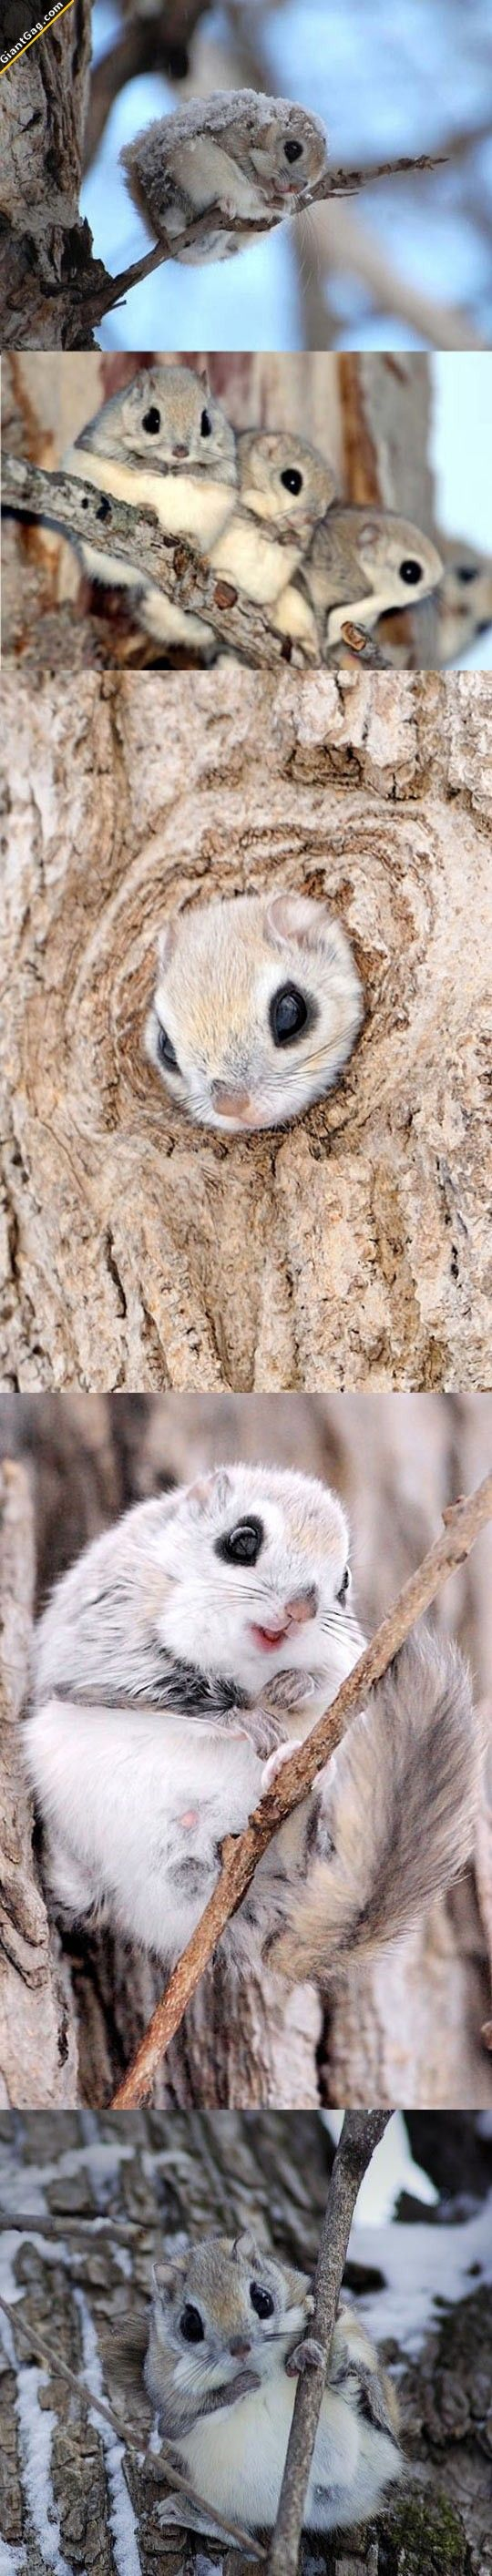 Japanese Flying Squirrels